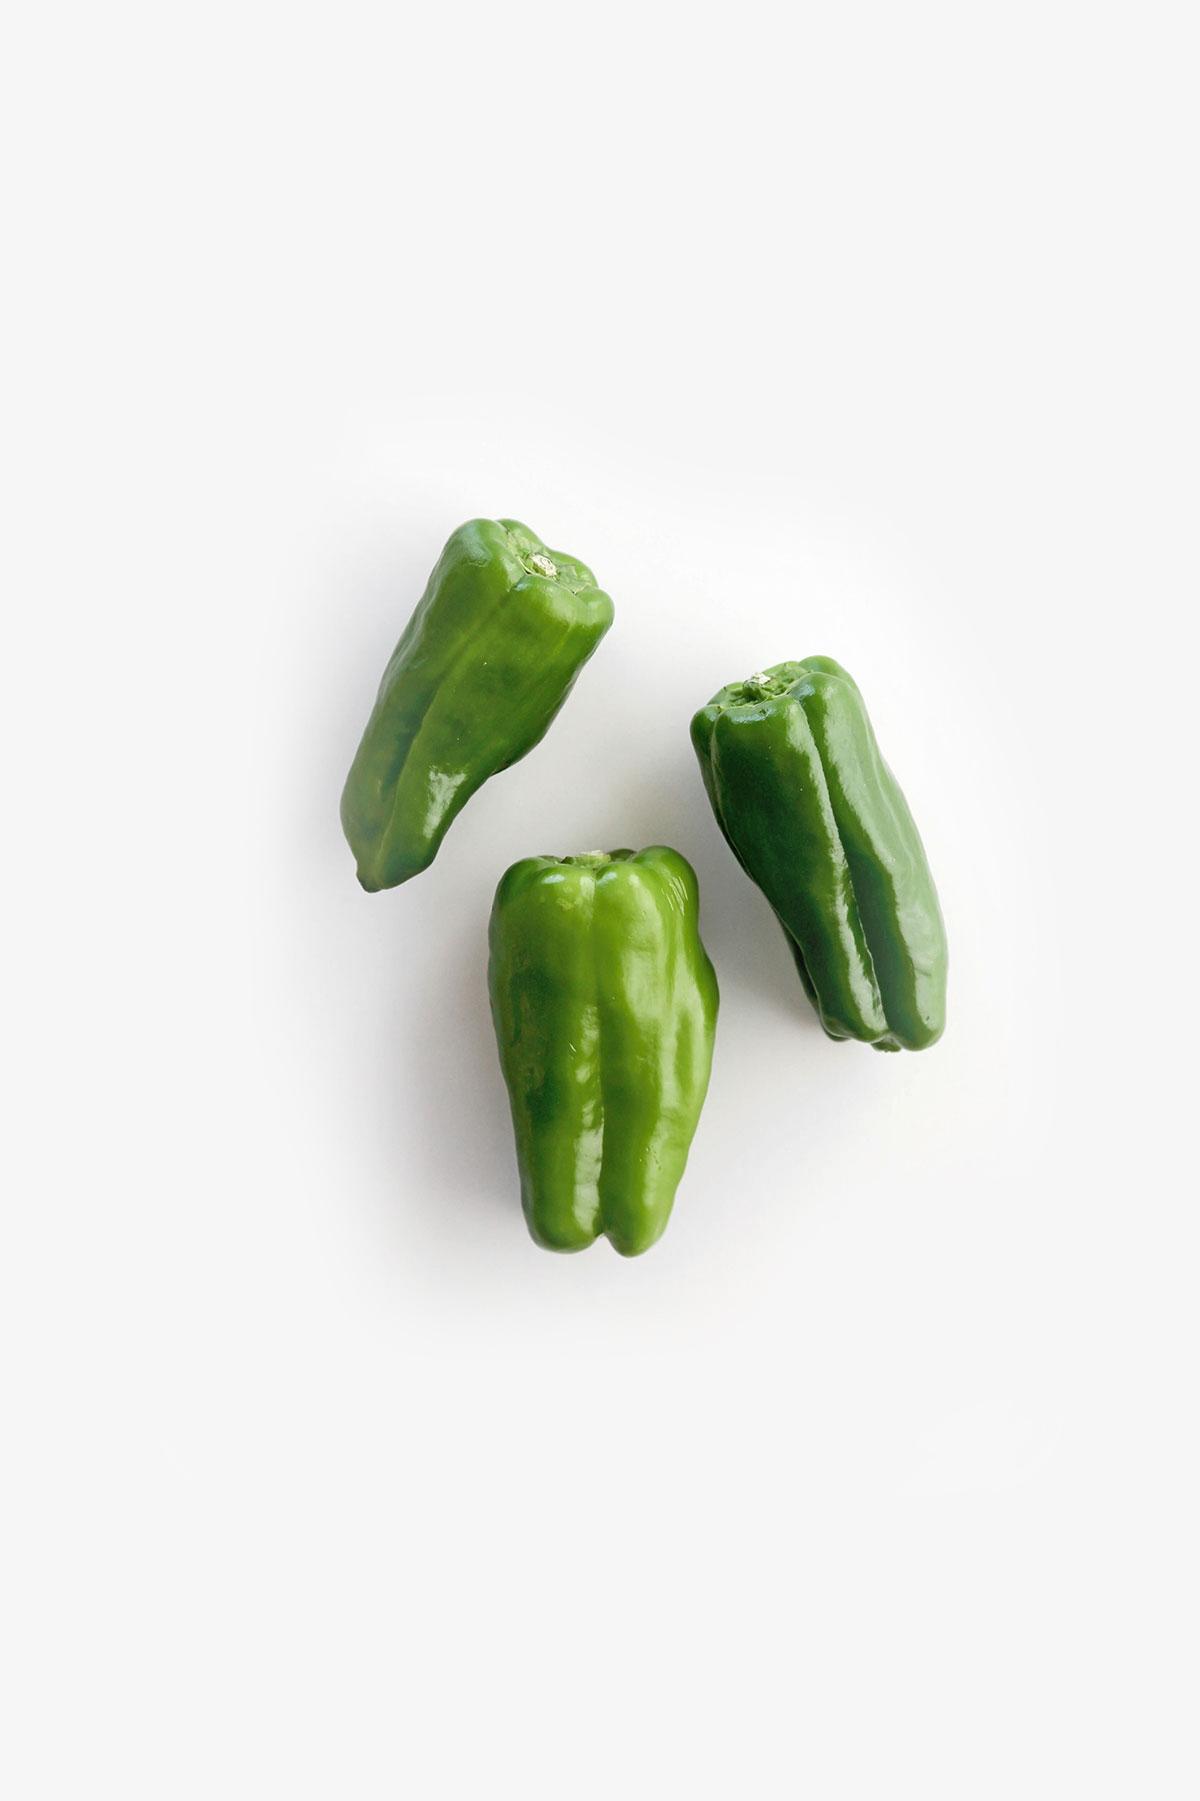 Keto Capsicum, a guide to keto foods for low carb. keto, keto ingredients, keto foods, keto produce, keto vegetables, ketogenic diet, keto shopping list, low carb, low carb foods, low carb vegetables, lchf, lchf foods